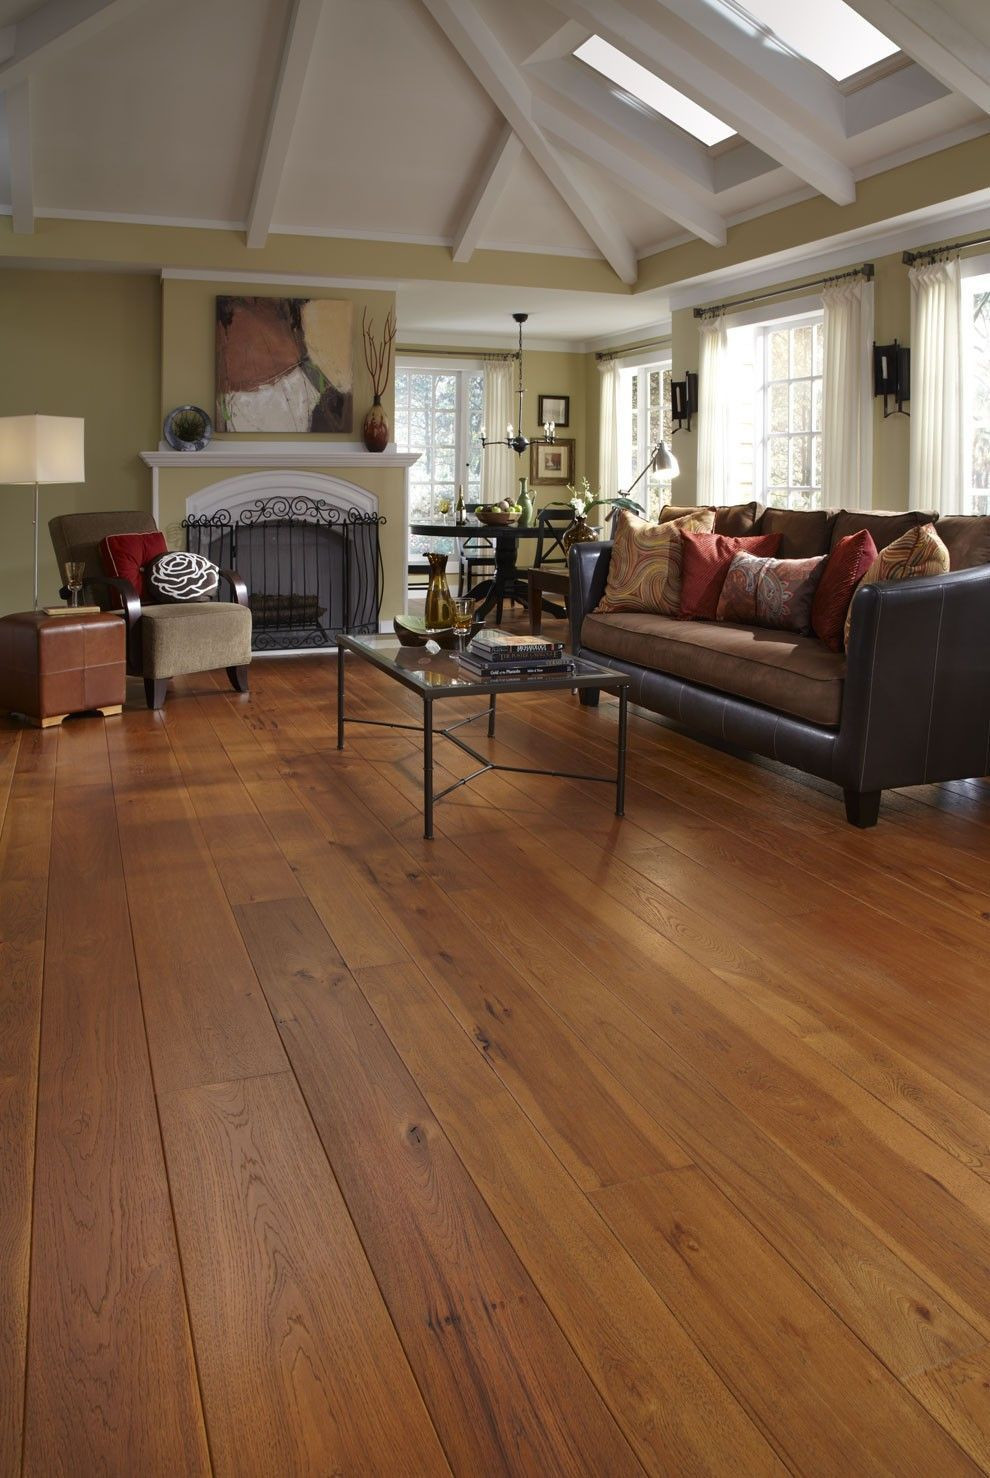 staining hardwood floors by hand of brushed hickory living room flooring pinterest wide plank throughout carlisle wide plank floors is the premier supplier of hand crafted wood flooring including hickory hardwood floors and prefinished wood flooring in a